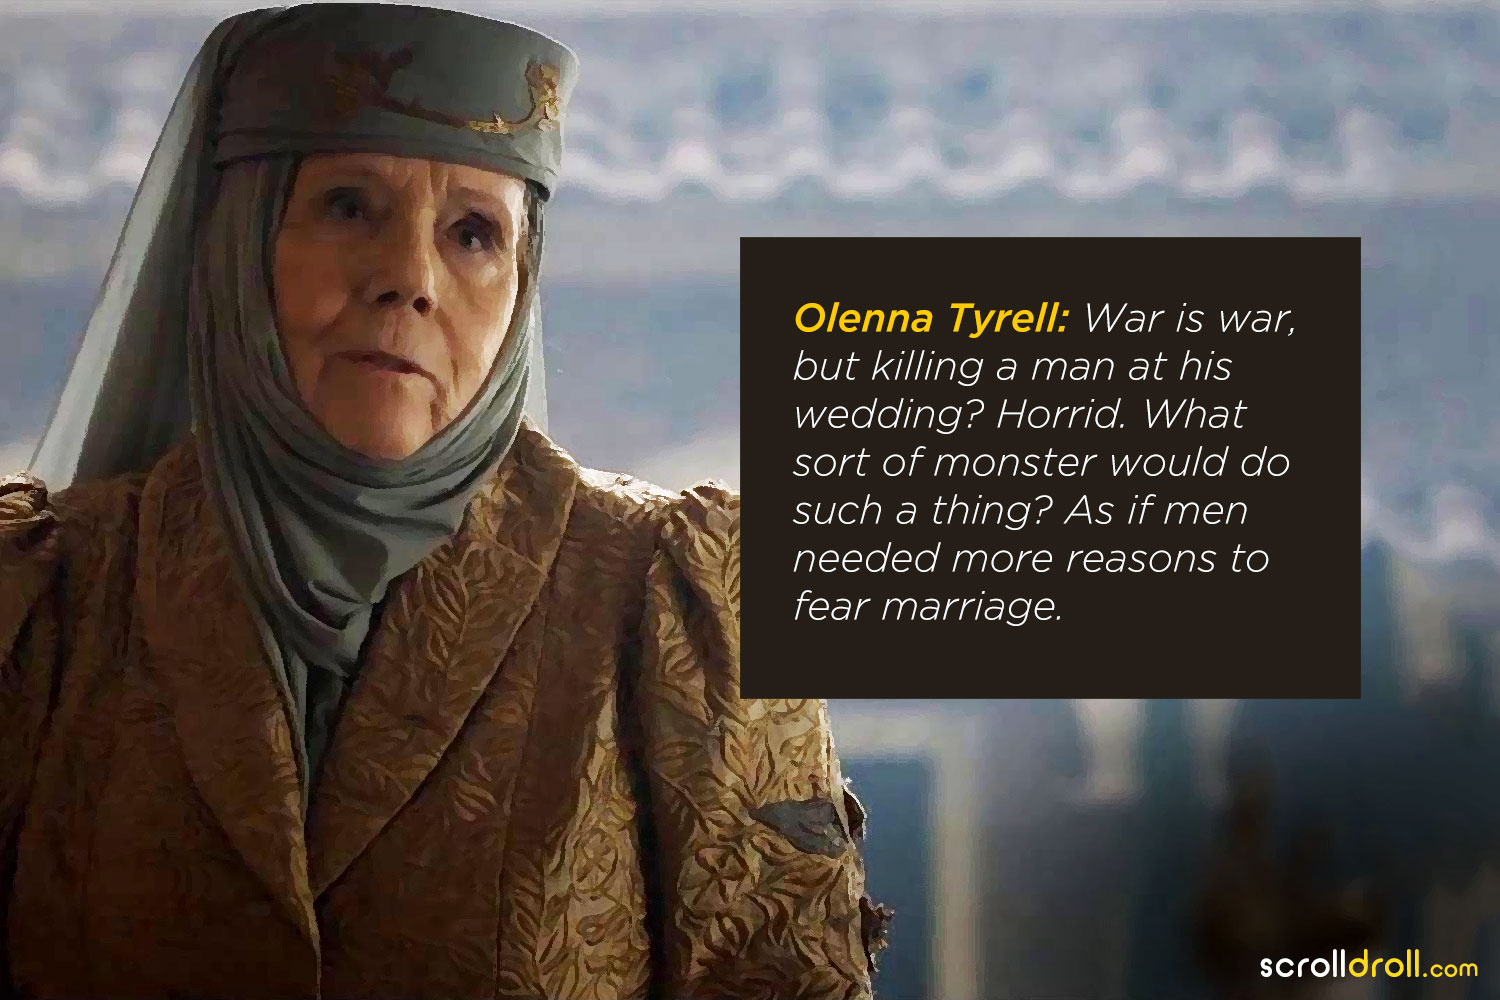 Lady Olenna Had Harsh Words for Men on Game of Thrones and I'm Here for It